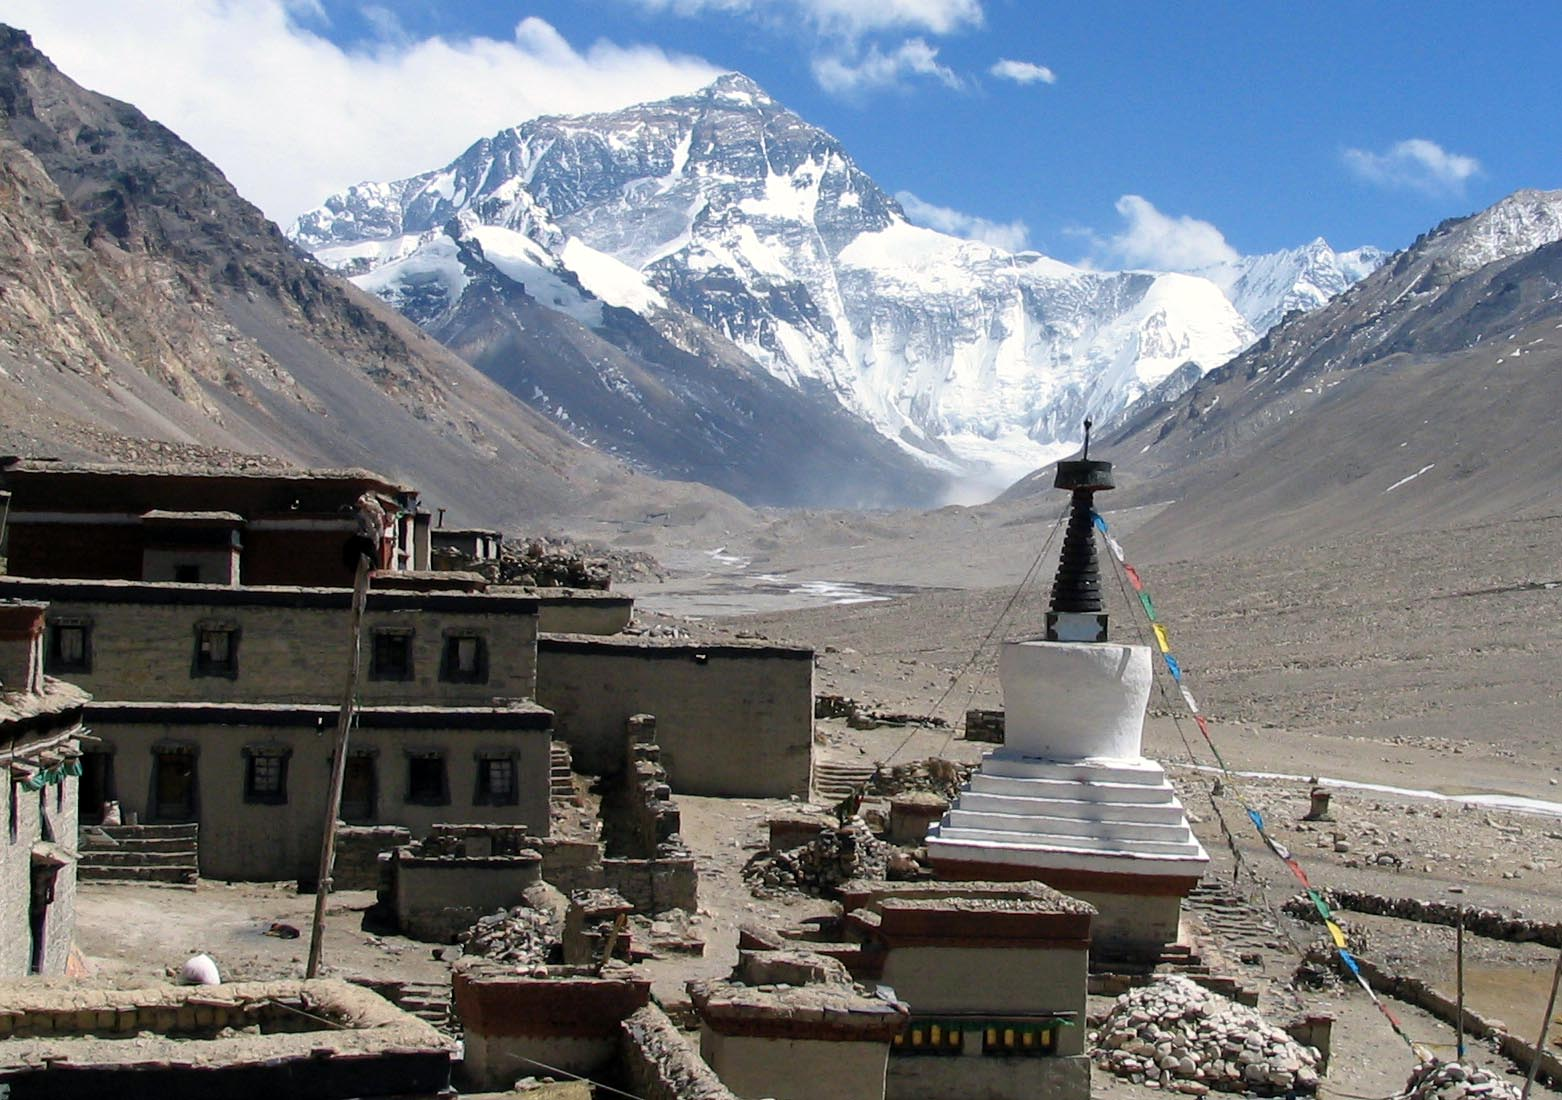 Image 1. Classic view of the Rongbuk Monastery, Tibet taken by me while on a trek to Advanced Base Camp of Mount Everest. Photo by Csearl.